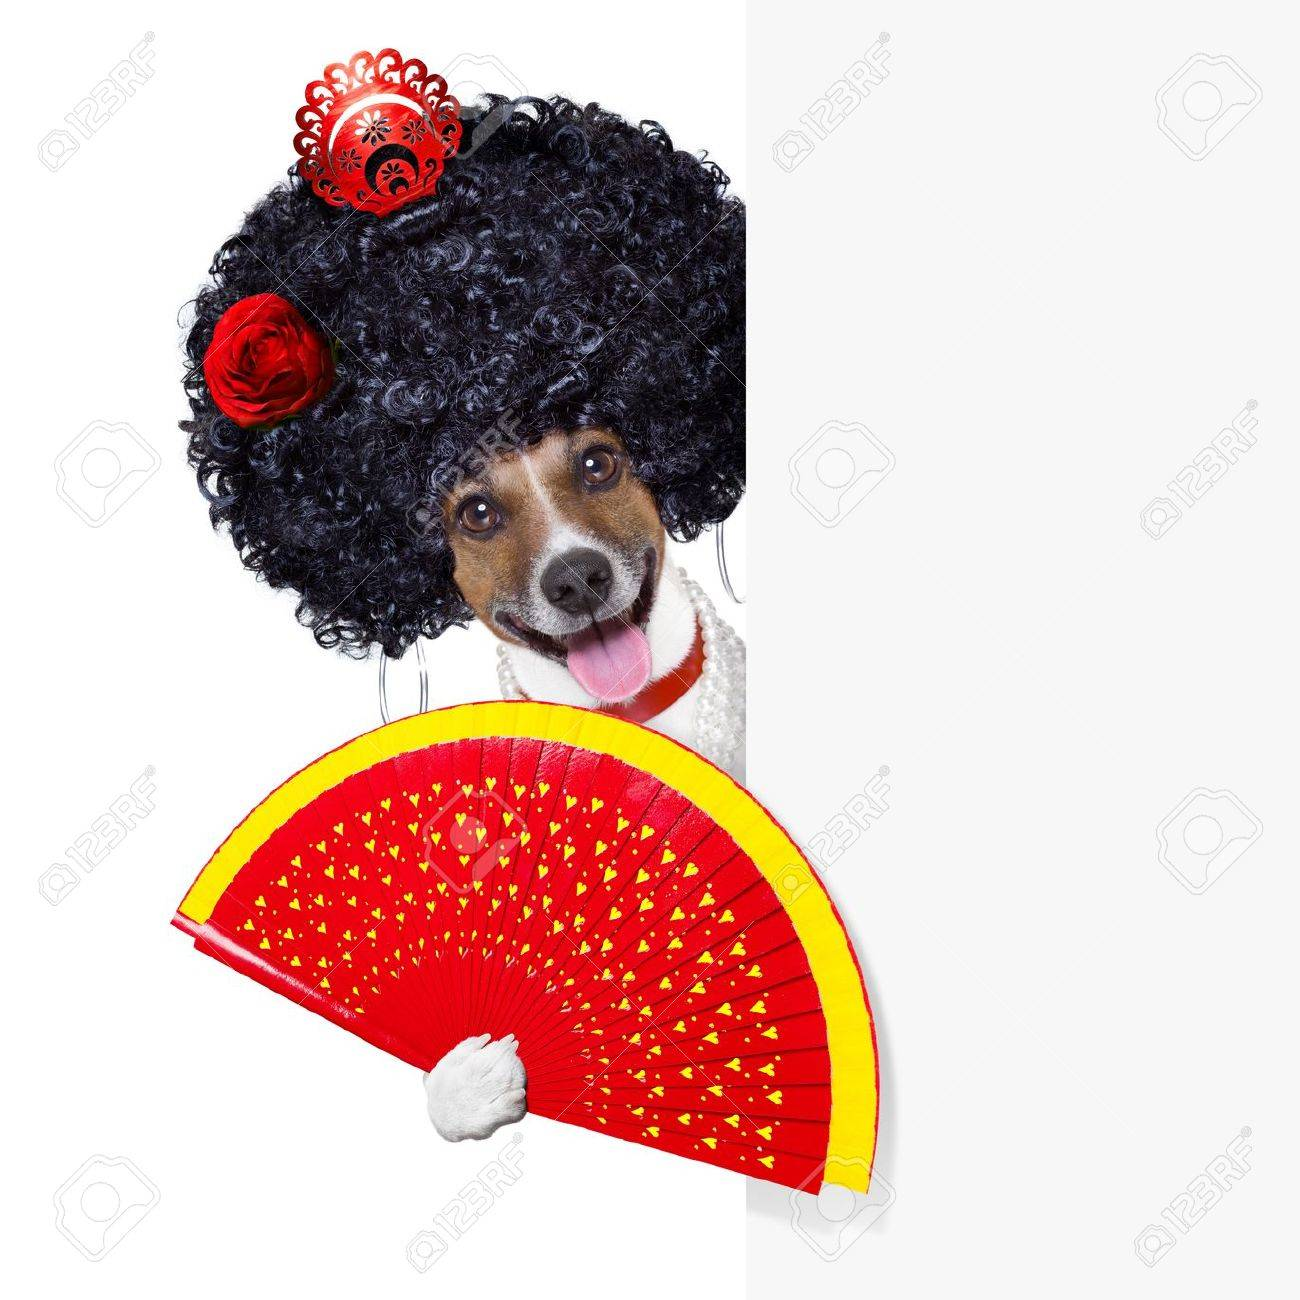 spanish flamenco dog with very big curly hair and hand fan behind banner placard Stock Photo - 20679855